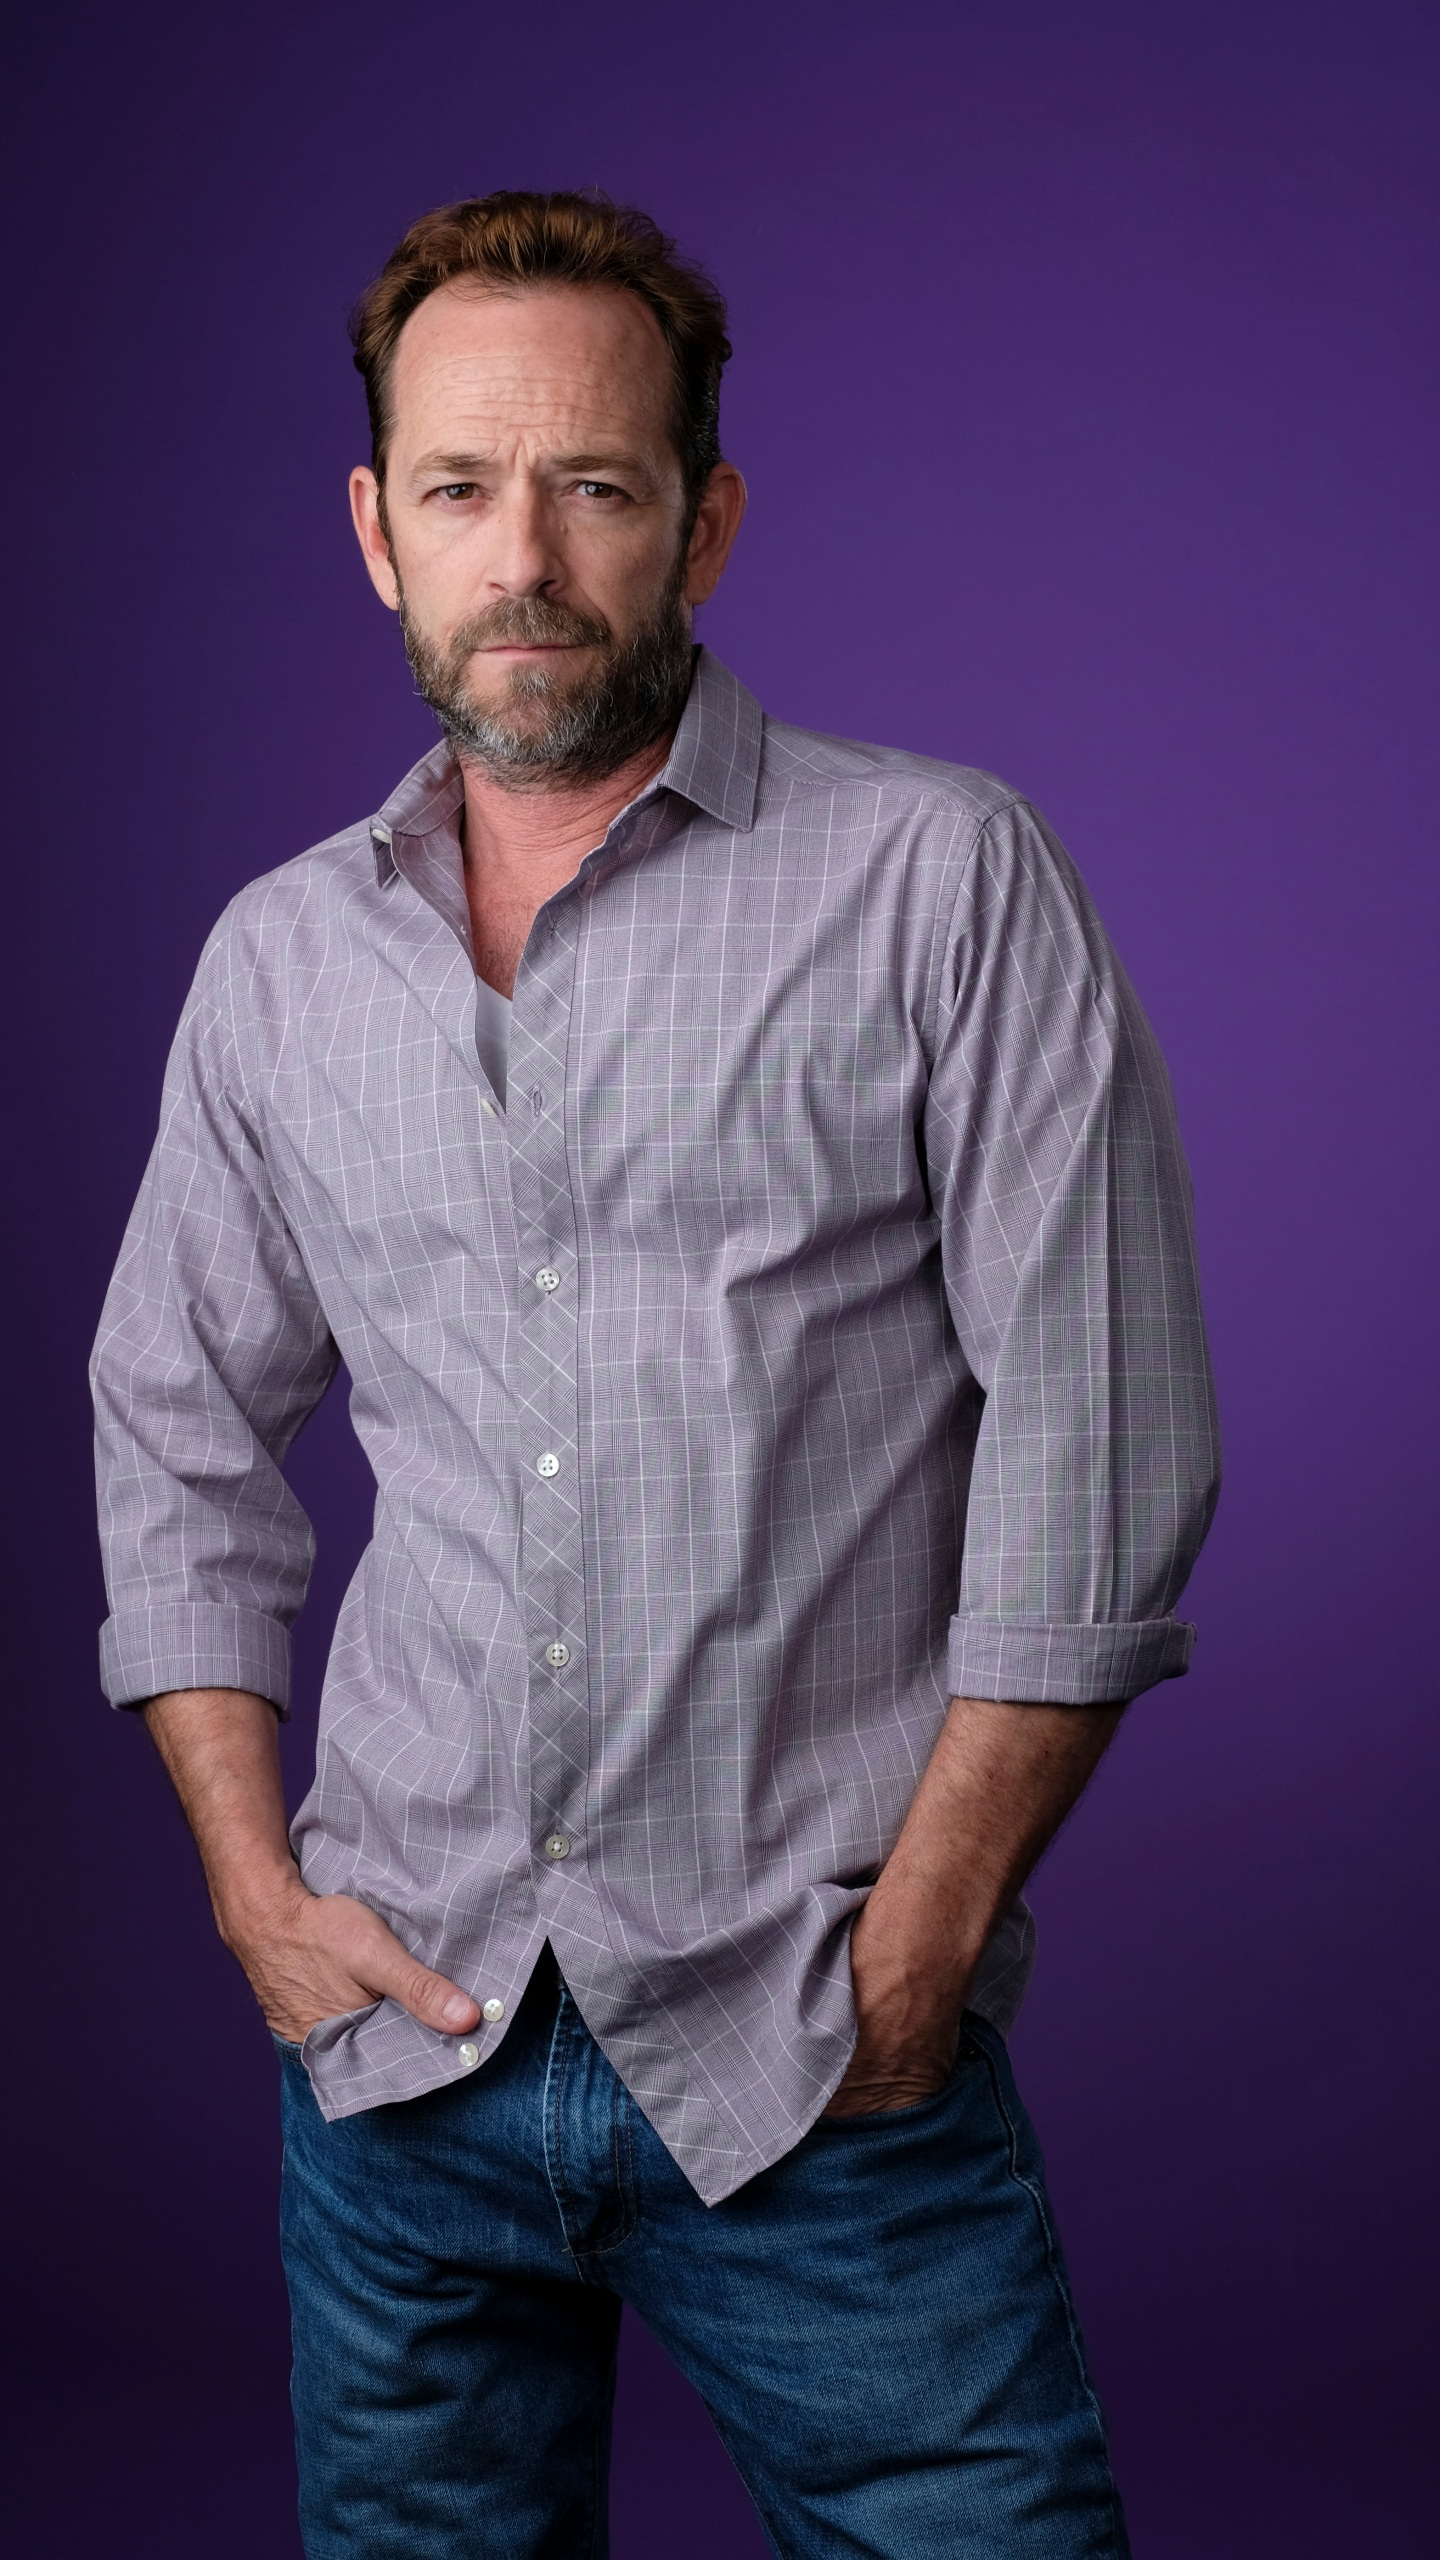 People_Luke_Perry_45234-159532.jpg82166453